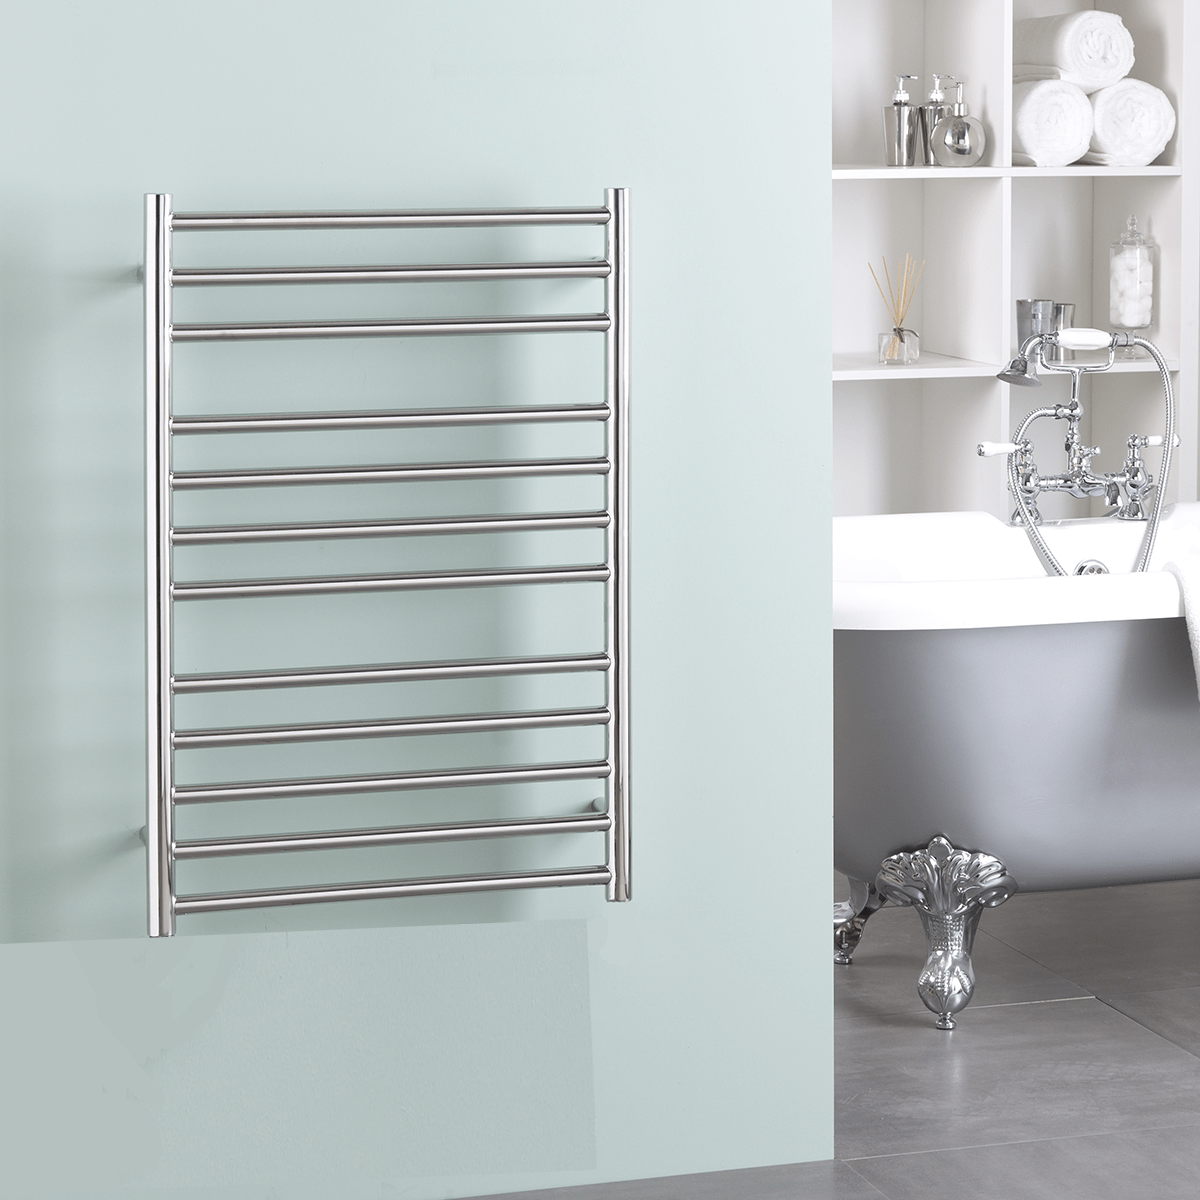 BRADDAN Stainless Steel Modern Heated Towel Rail / Warmer / Radiator – ELECTRIC + Fused Spur Timer BUY ONLINE